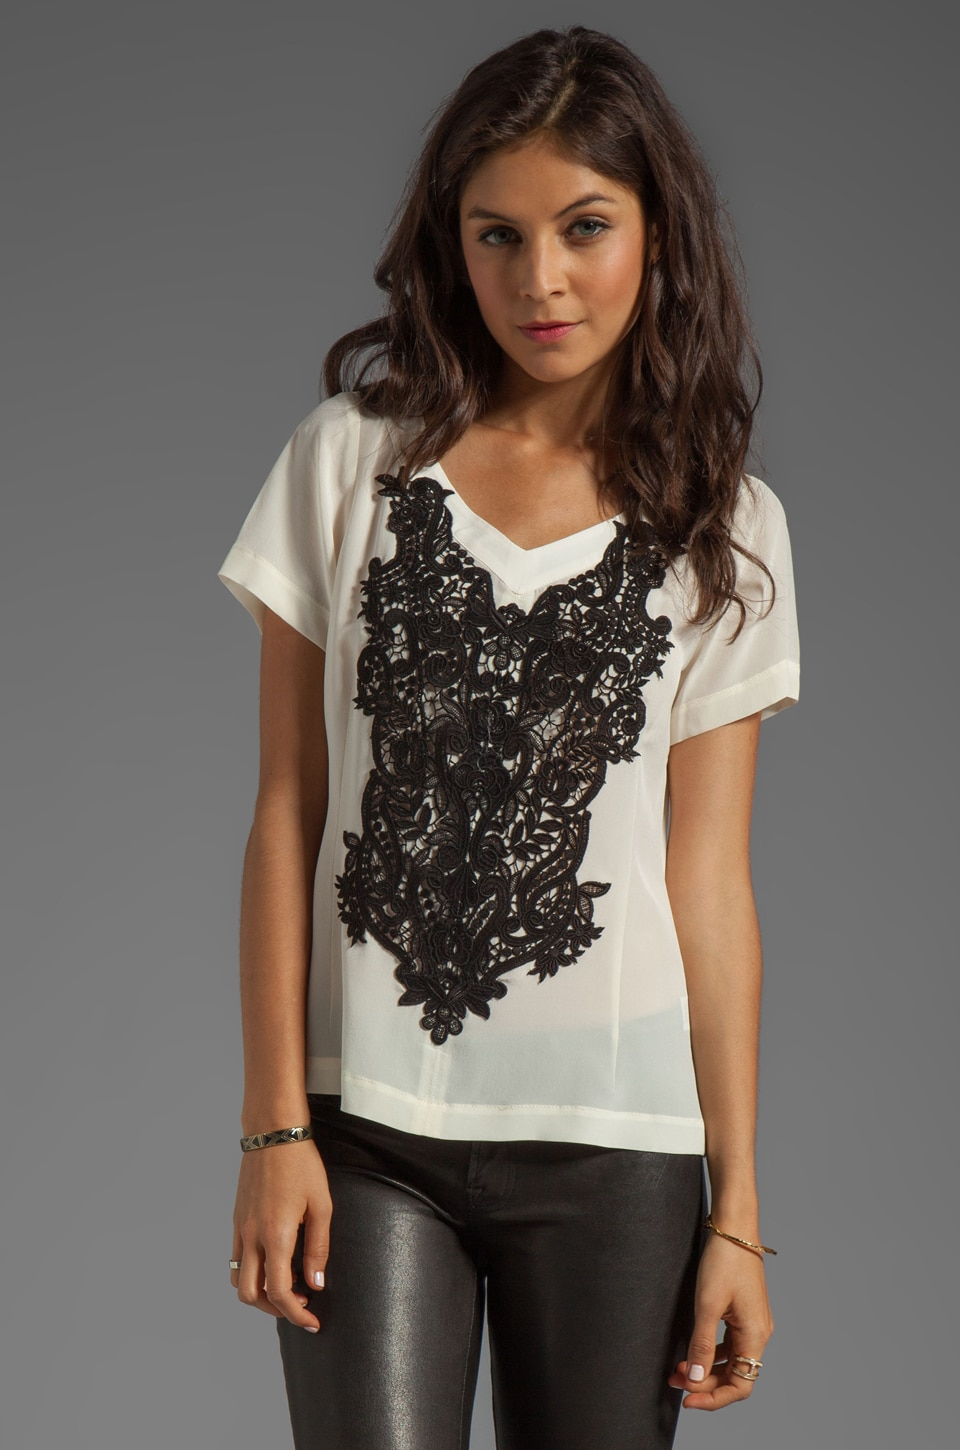 Nanette Lepore Kissing Booth Lace Snowcone Top in Ivory